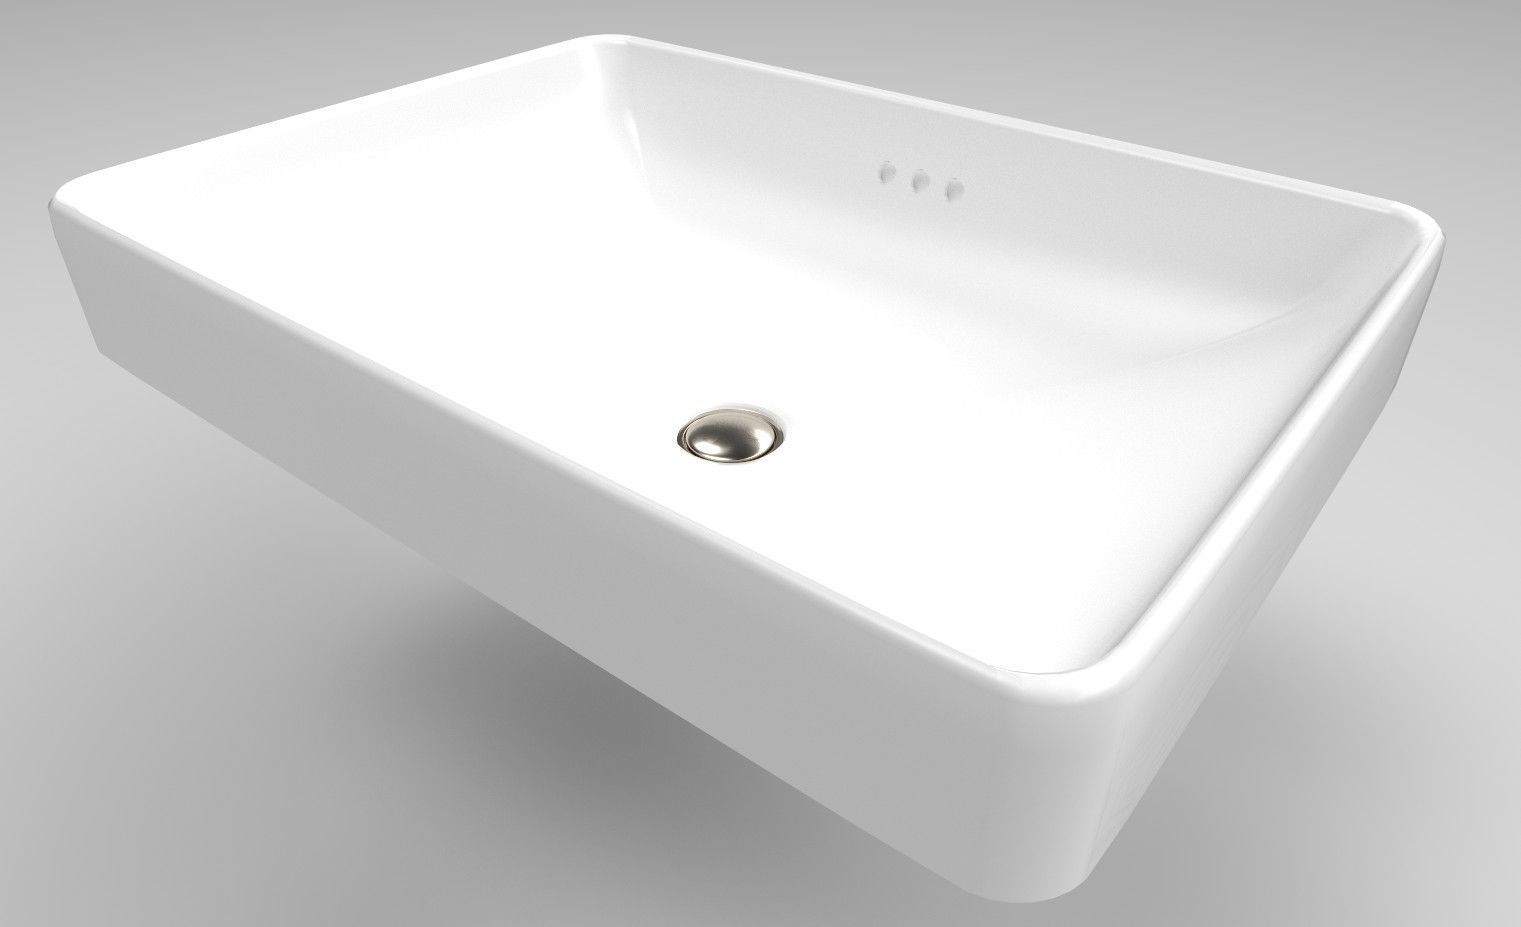 Bathroom Sink Vox Rectangle 3d Model Cgtrader